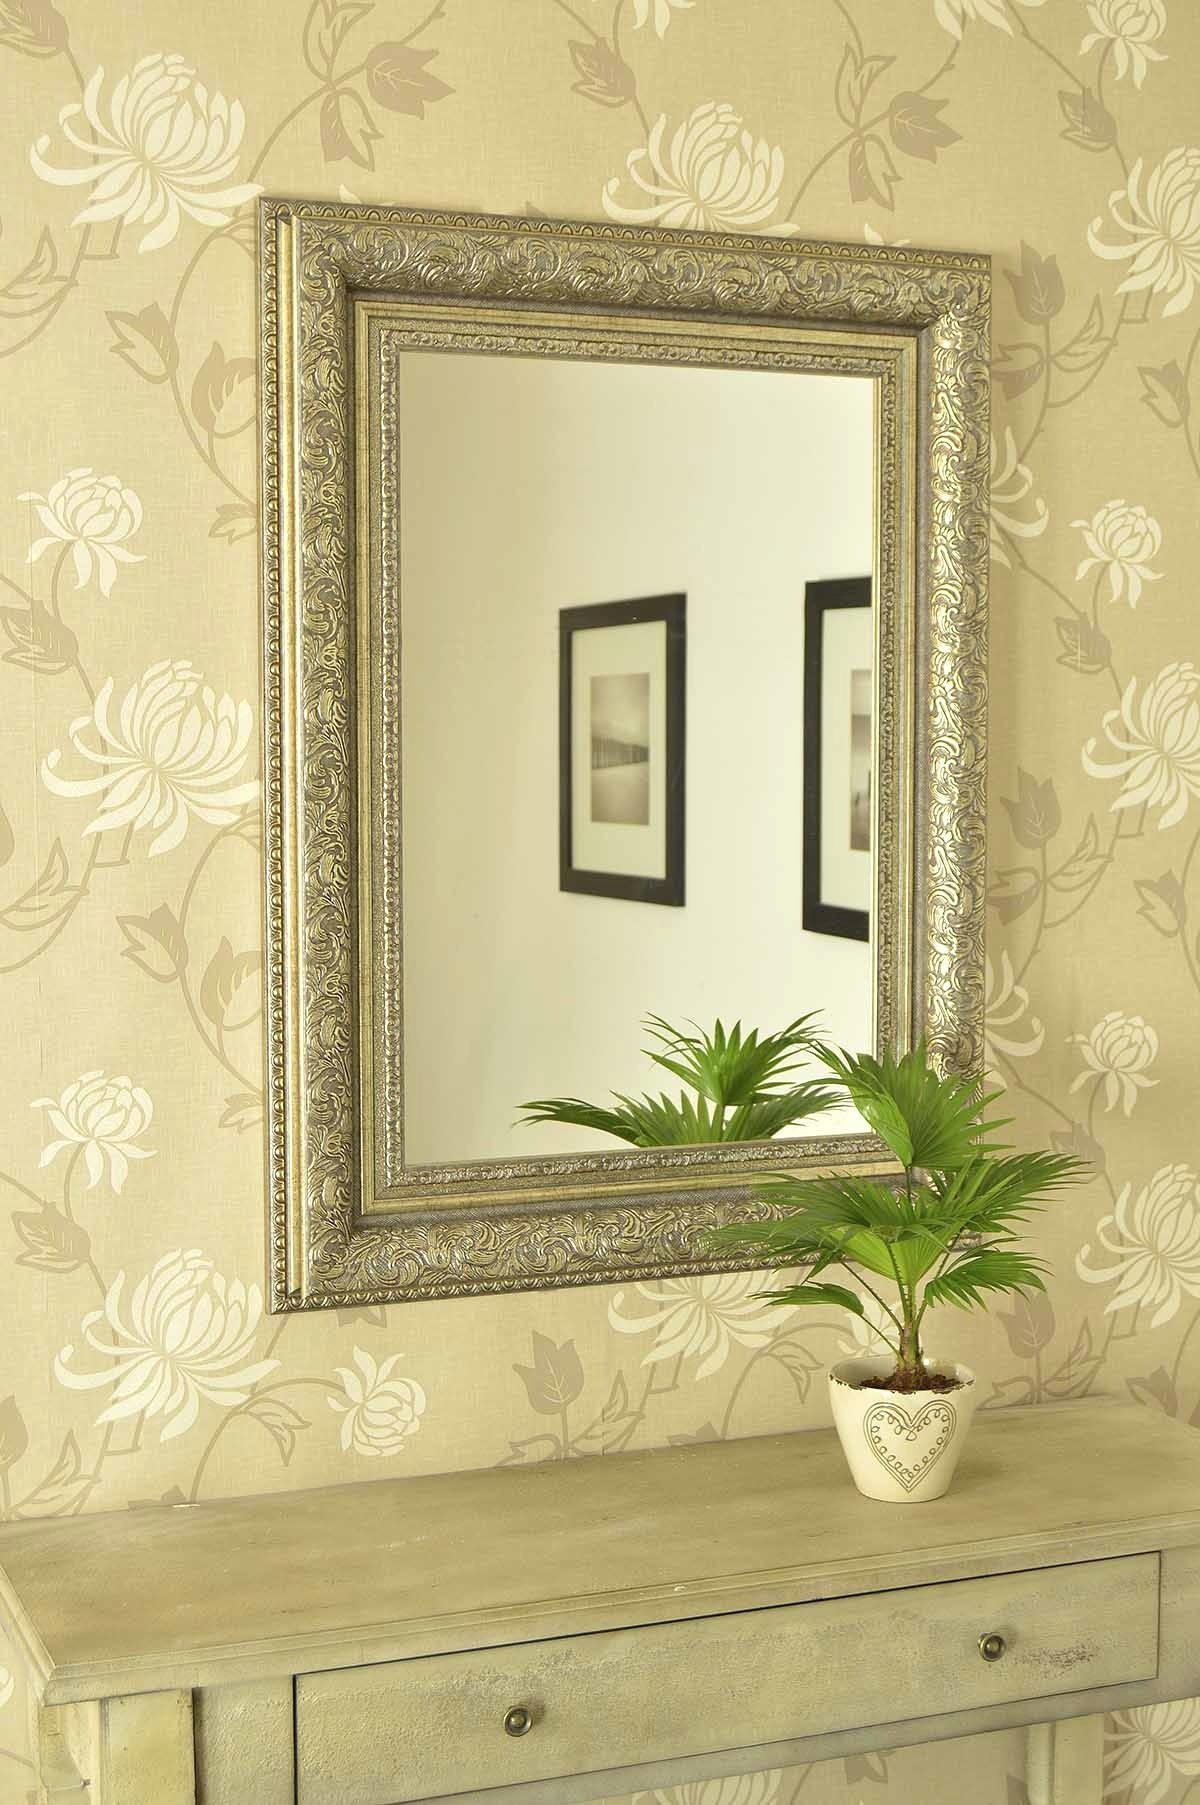 Wall Ideas : Contemporary Wall Mirrors Modern Wall Mirrors Sale Regarding Mirrors Modern Wall Art (Image 14 of 20)